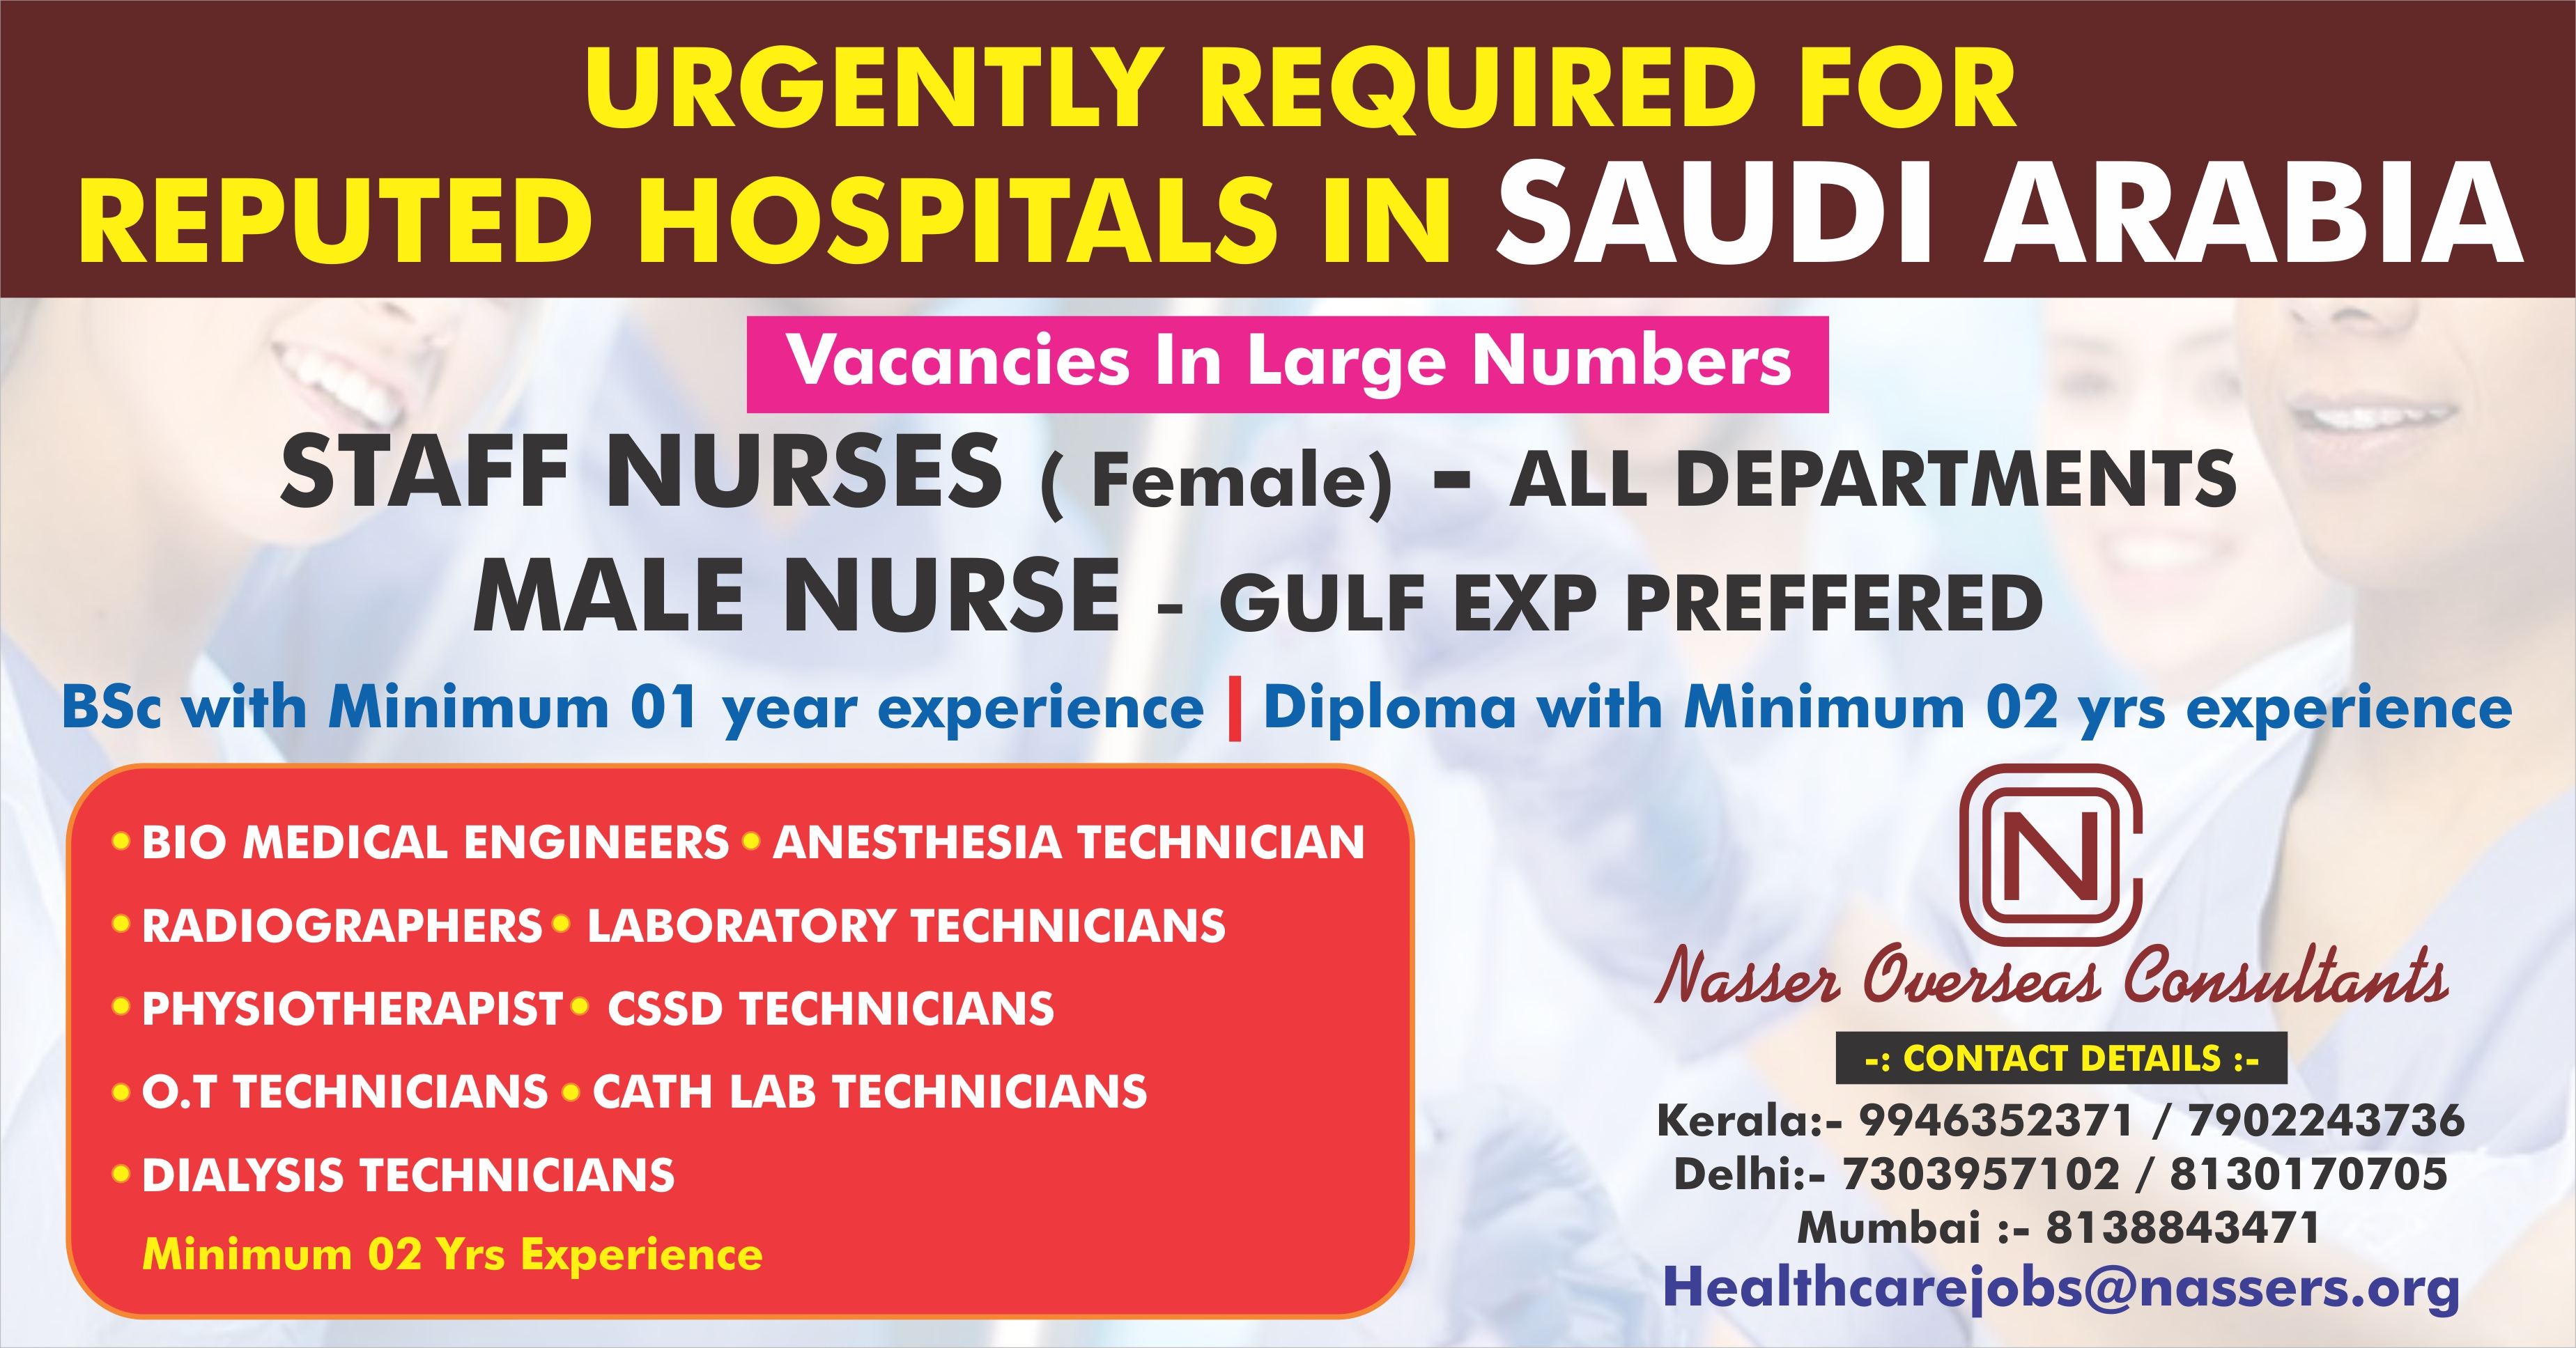 Urgently required for reputed Hospitals in Saudi Arabia Vacancies in